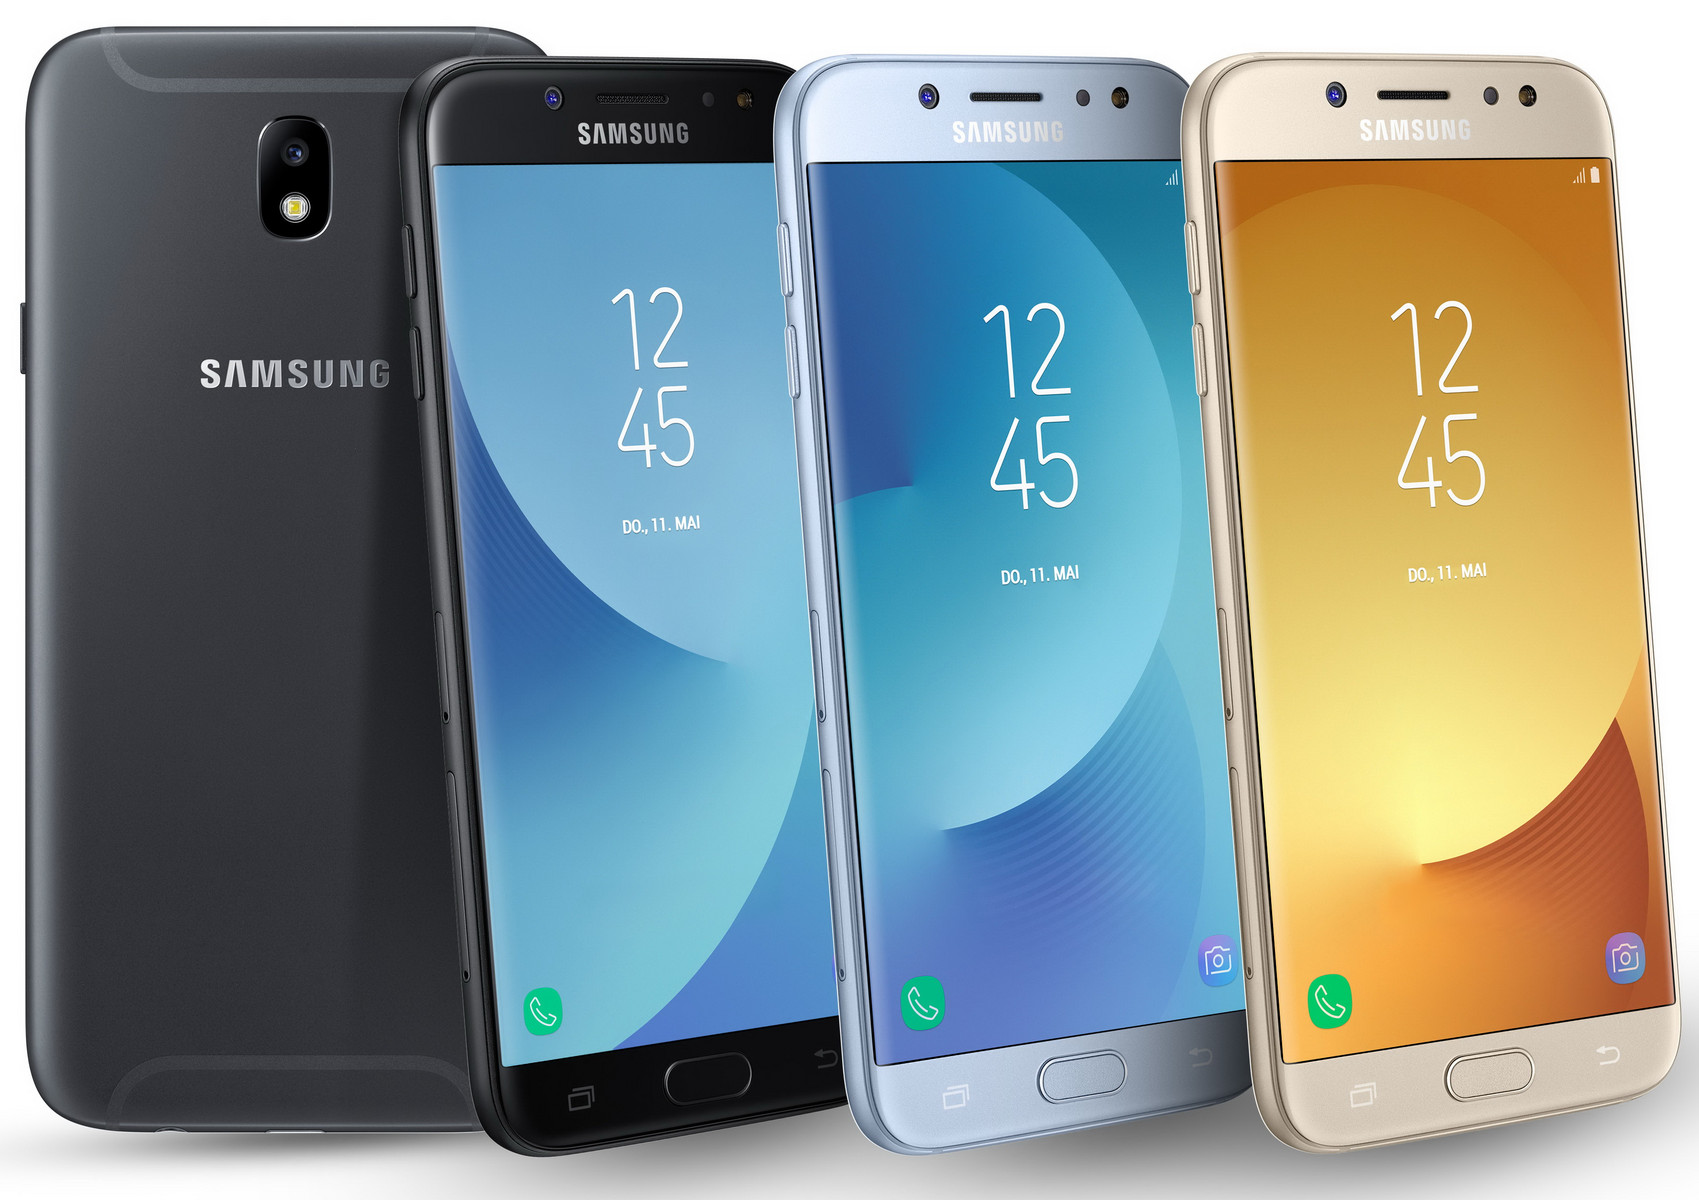 Samsung J7 2017 Or : how to unlock samsung galaxy j7 2017 using unlock codes ~ Pogadajmy.info Styles, Décorations et Voitures